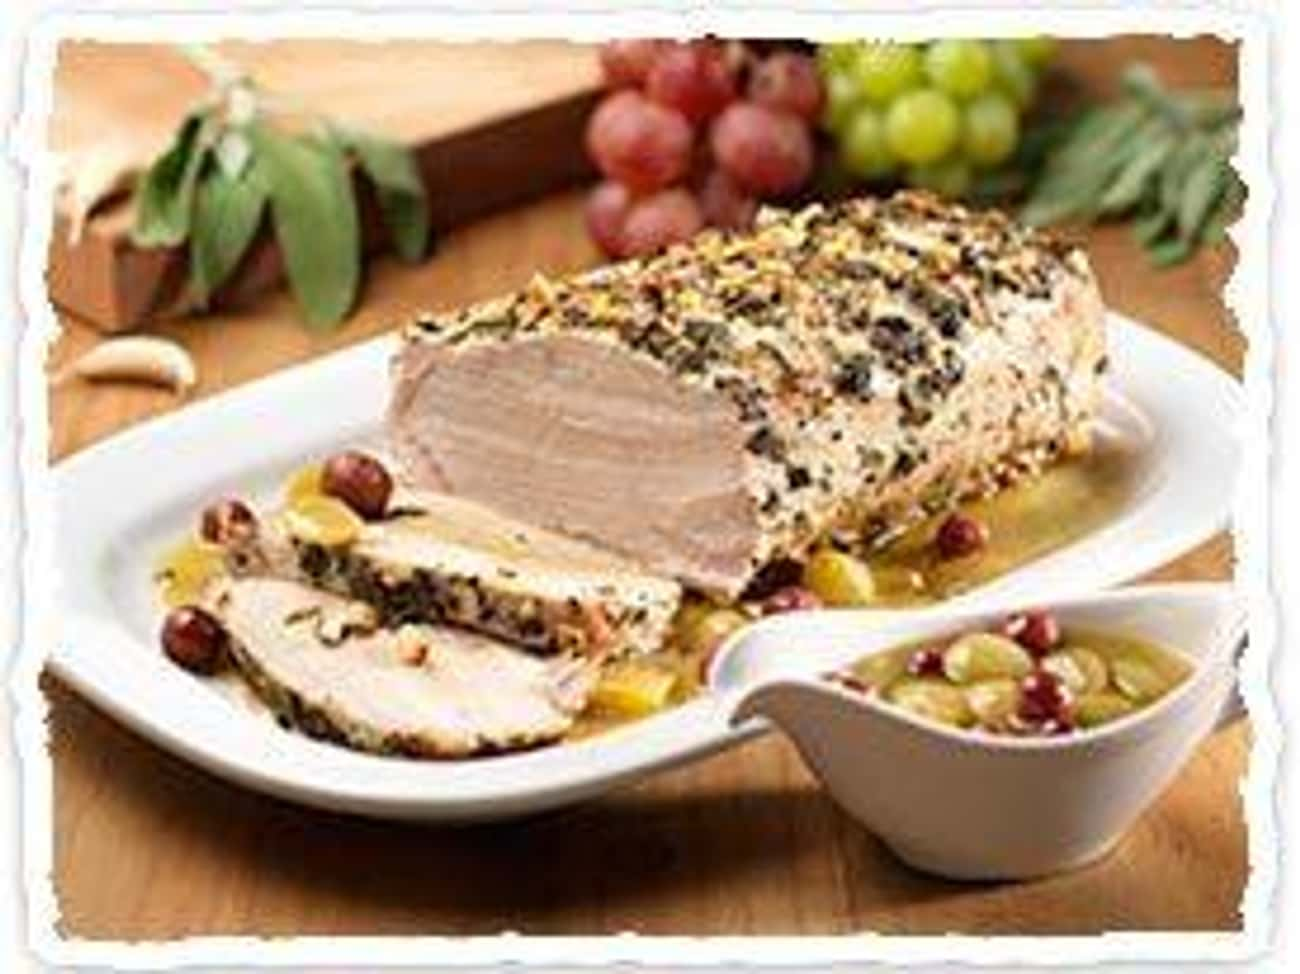 Roast Pork Loin with Grapes an is listed (or ranked) 1 on the list Olive Garden Recipes